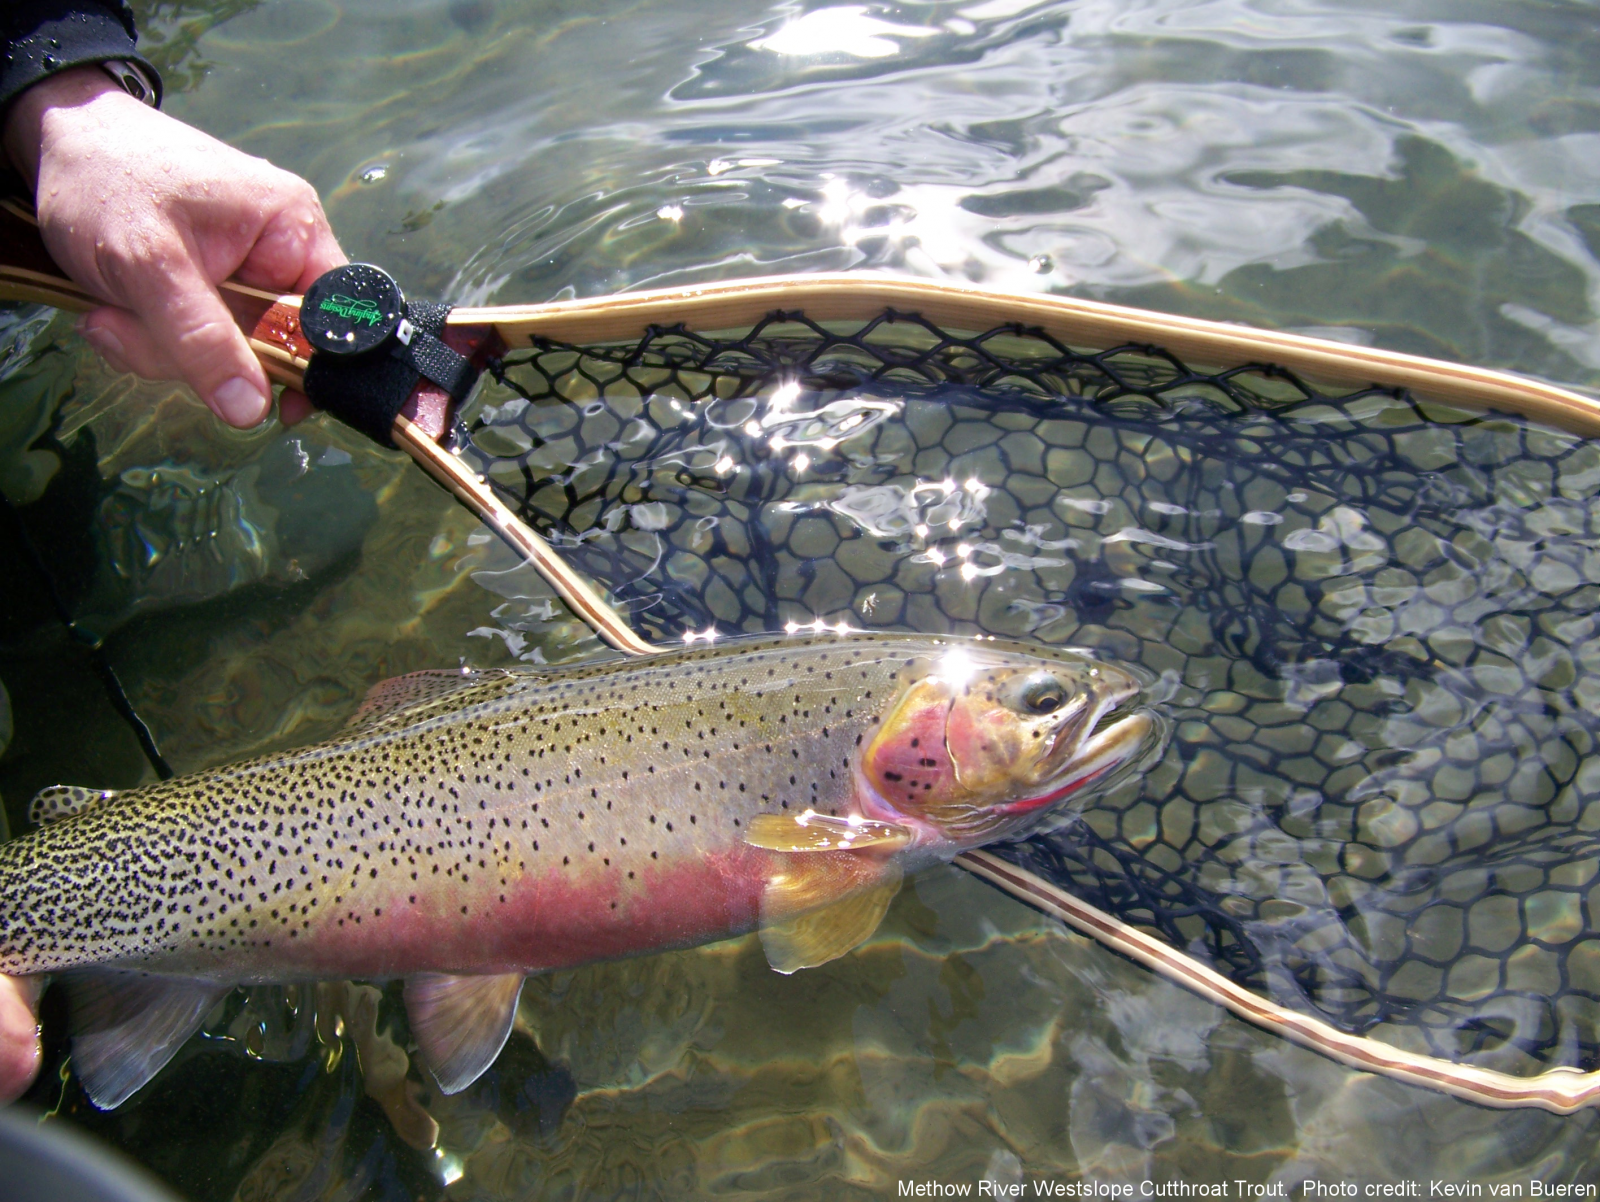 Methow River Washington Westslope Cutthroat trout